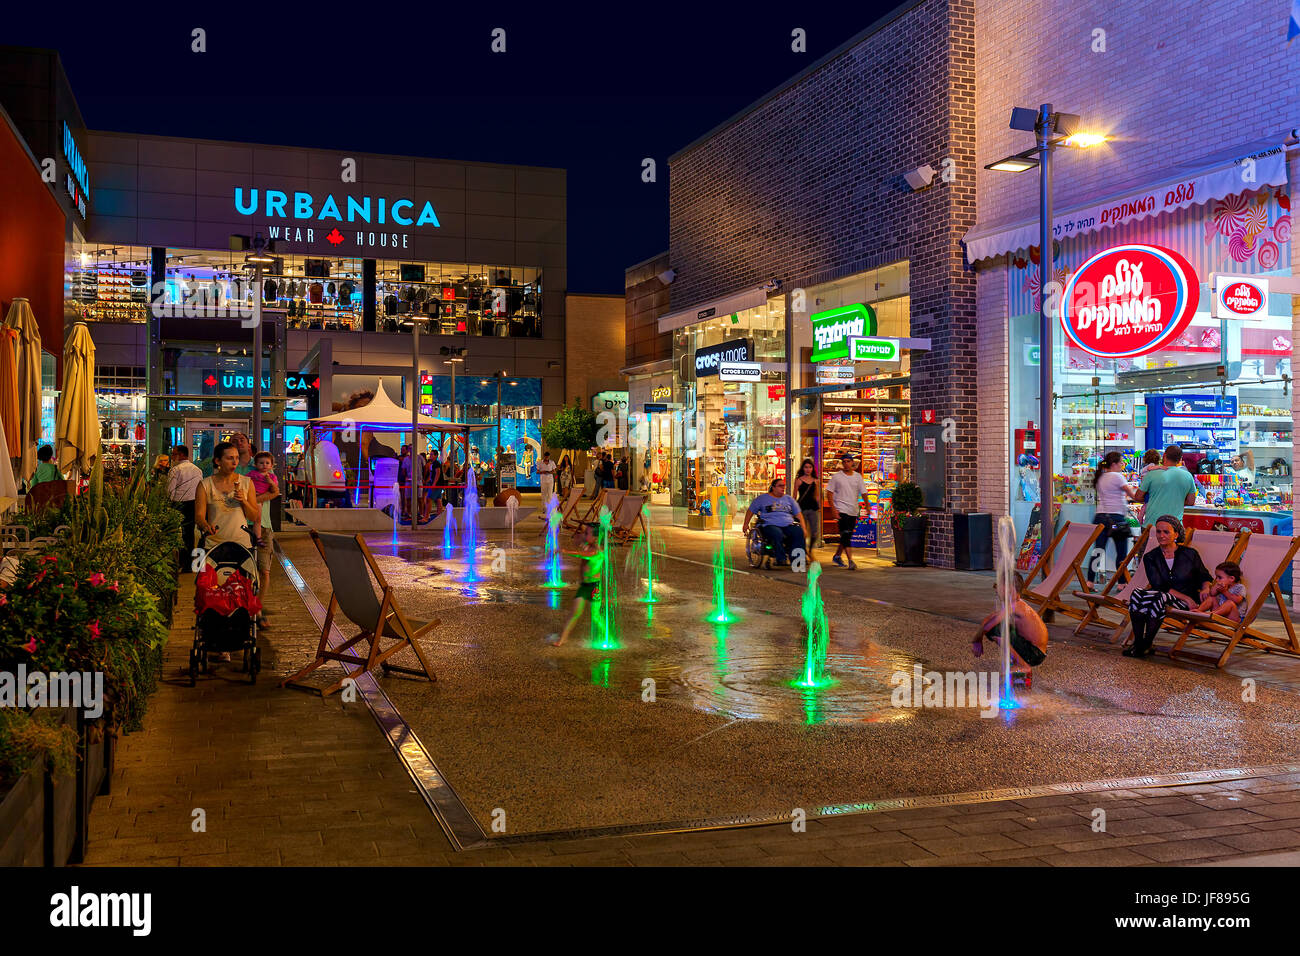 ASHDOD, ISRAEL - JULY 03, 2016: Shops, boutiques and illuminated fountains in openair mall at evening - owned by - Stock Image